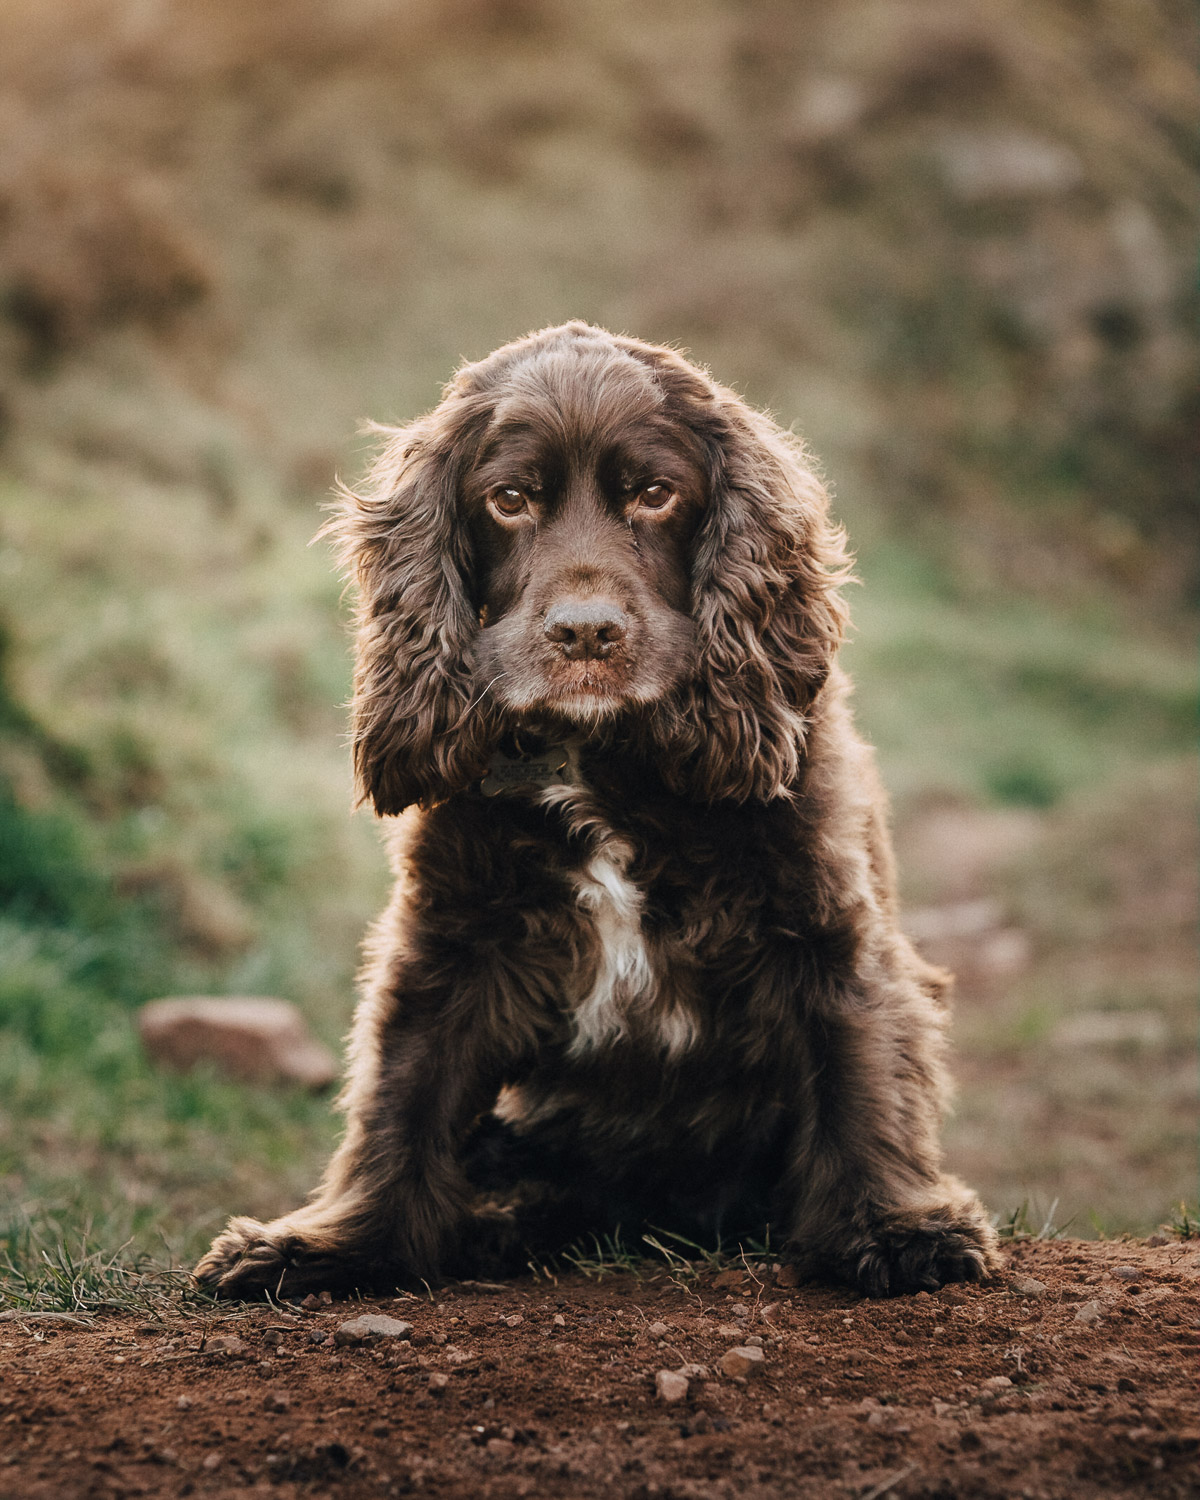 dog-photography-bristol-andrew-maybury-20180225-170753.jpg